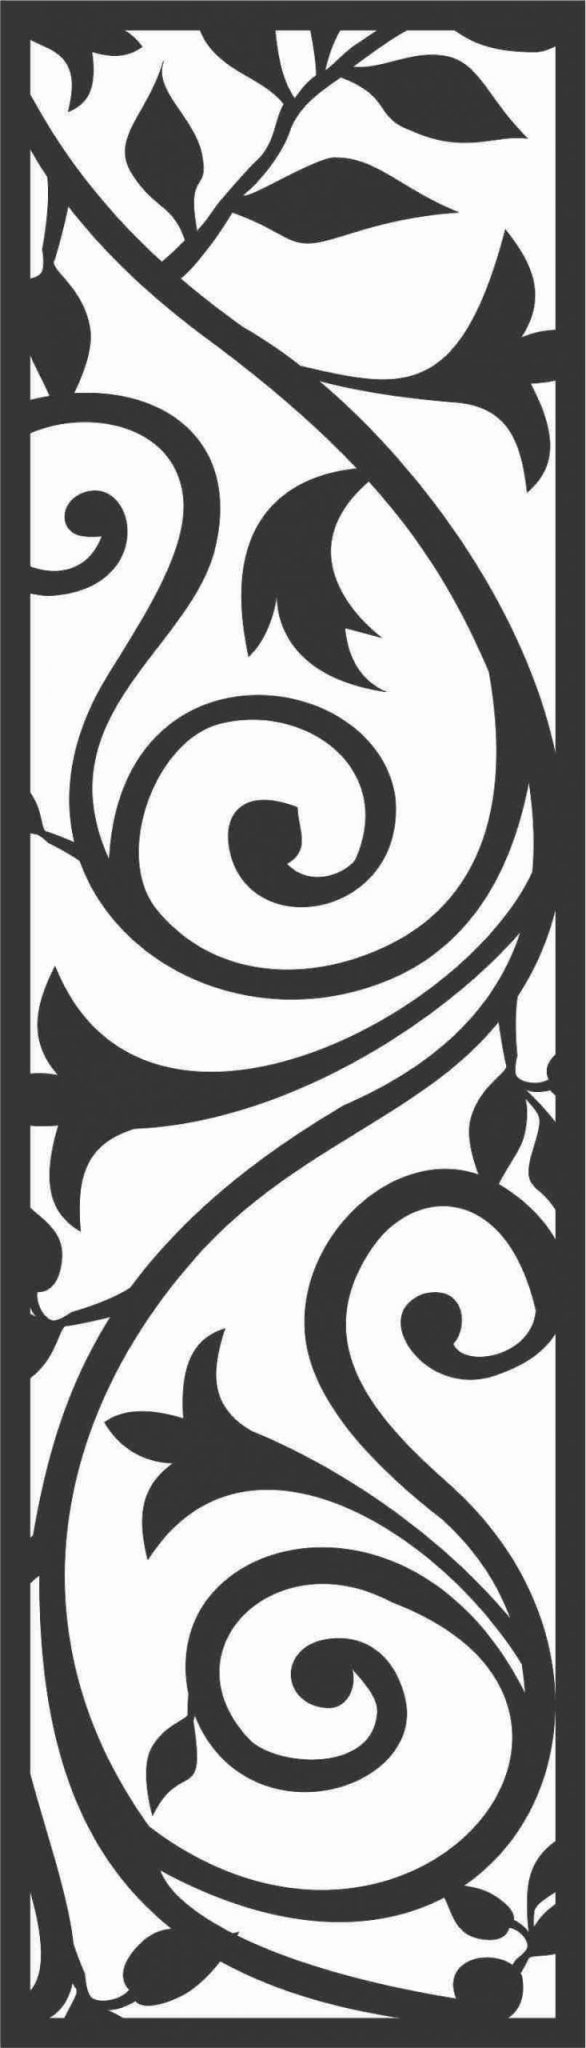 Floral Screen Patterns Design 52 Free DXF File